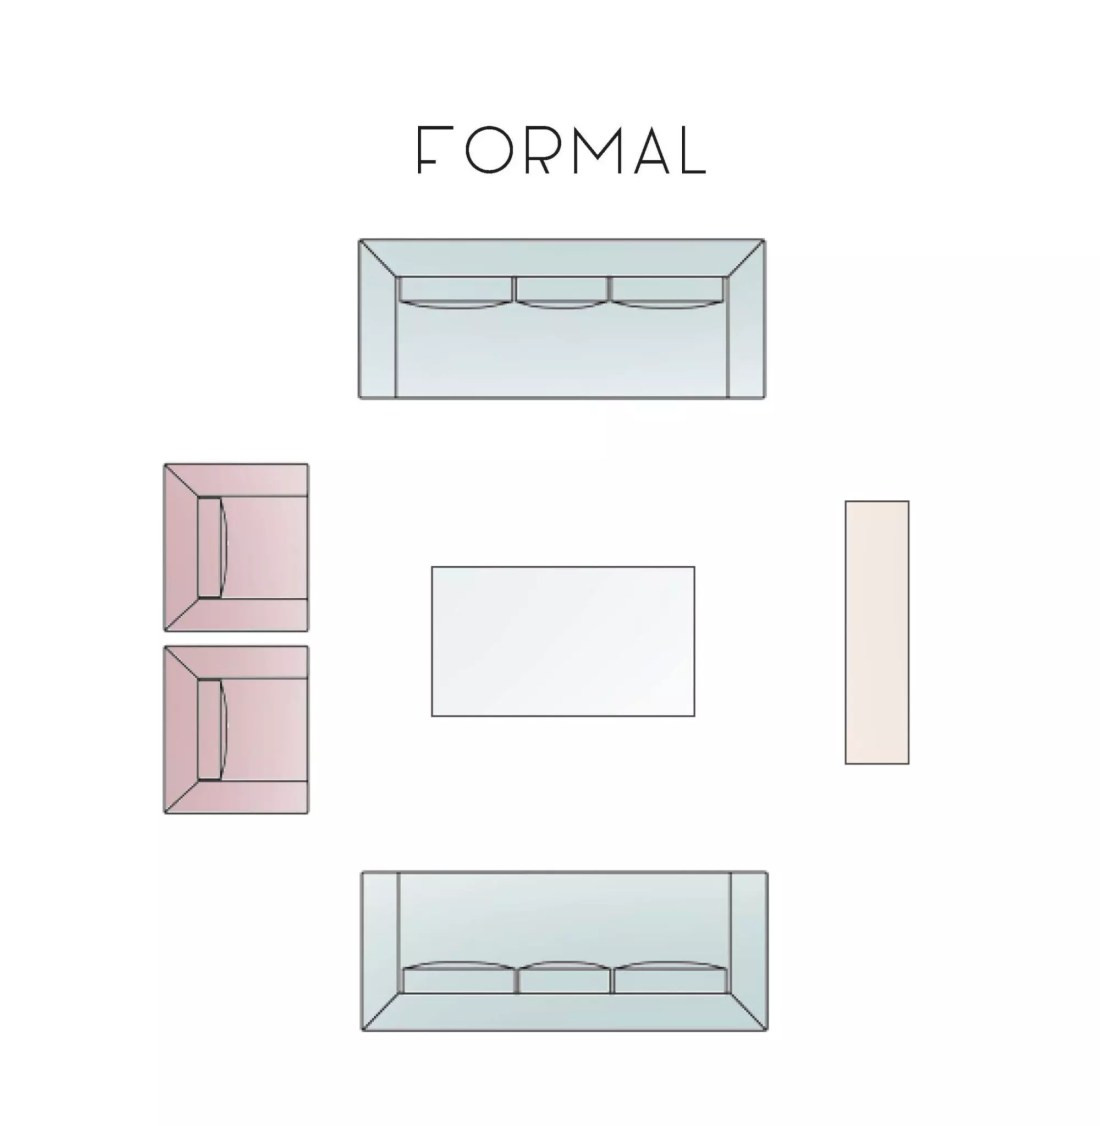 Formal Living Room Layout Option - Catherine French Design